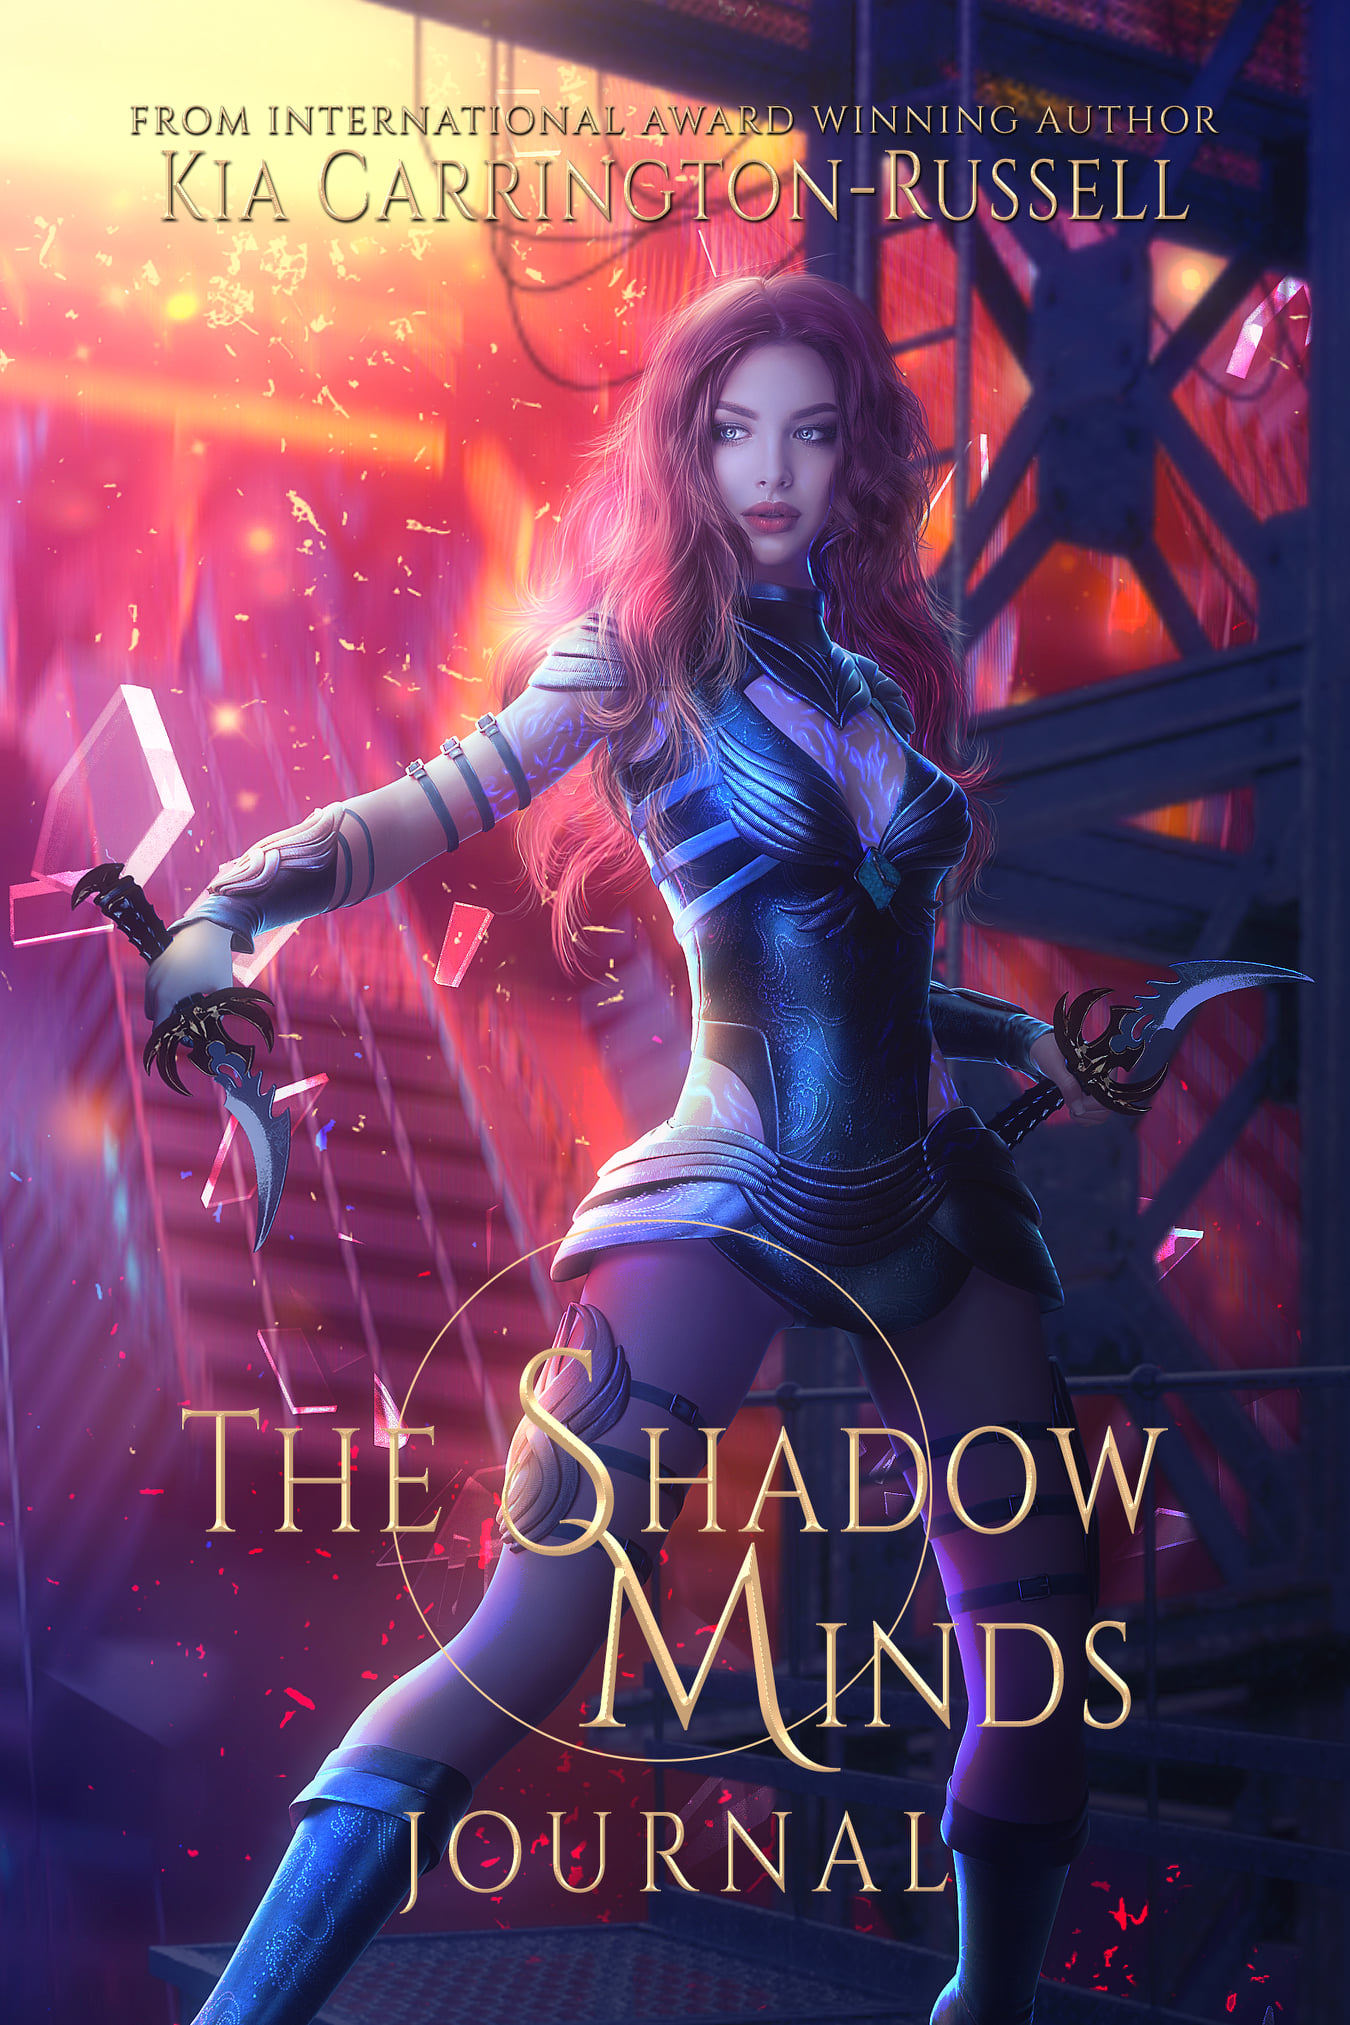 The Shadow Minds Journal by Kia Carrington-Russell